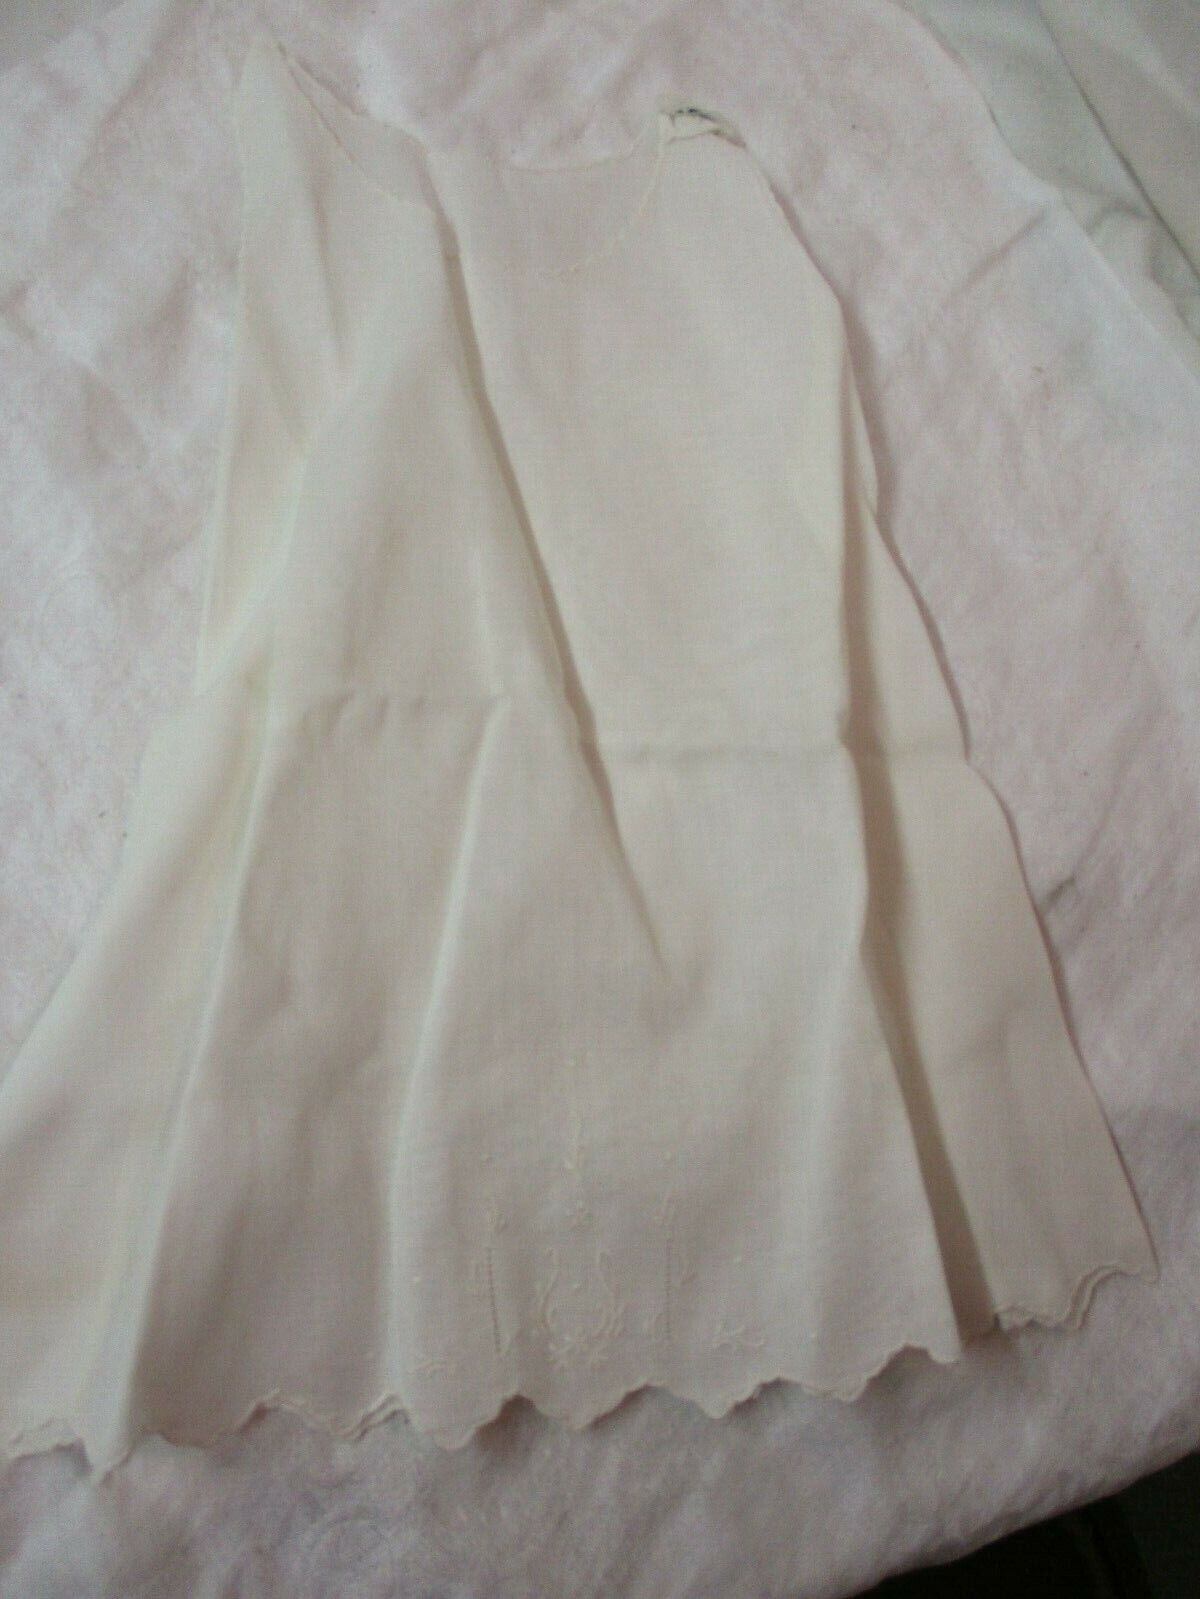 Vtg hand made Philippines Child's ivory color sleeveless Dress embroidery sz 6m